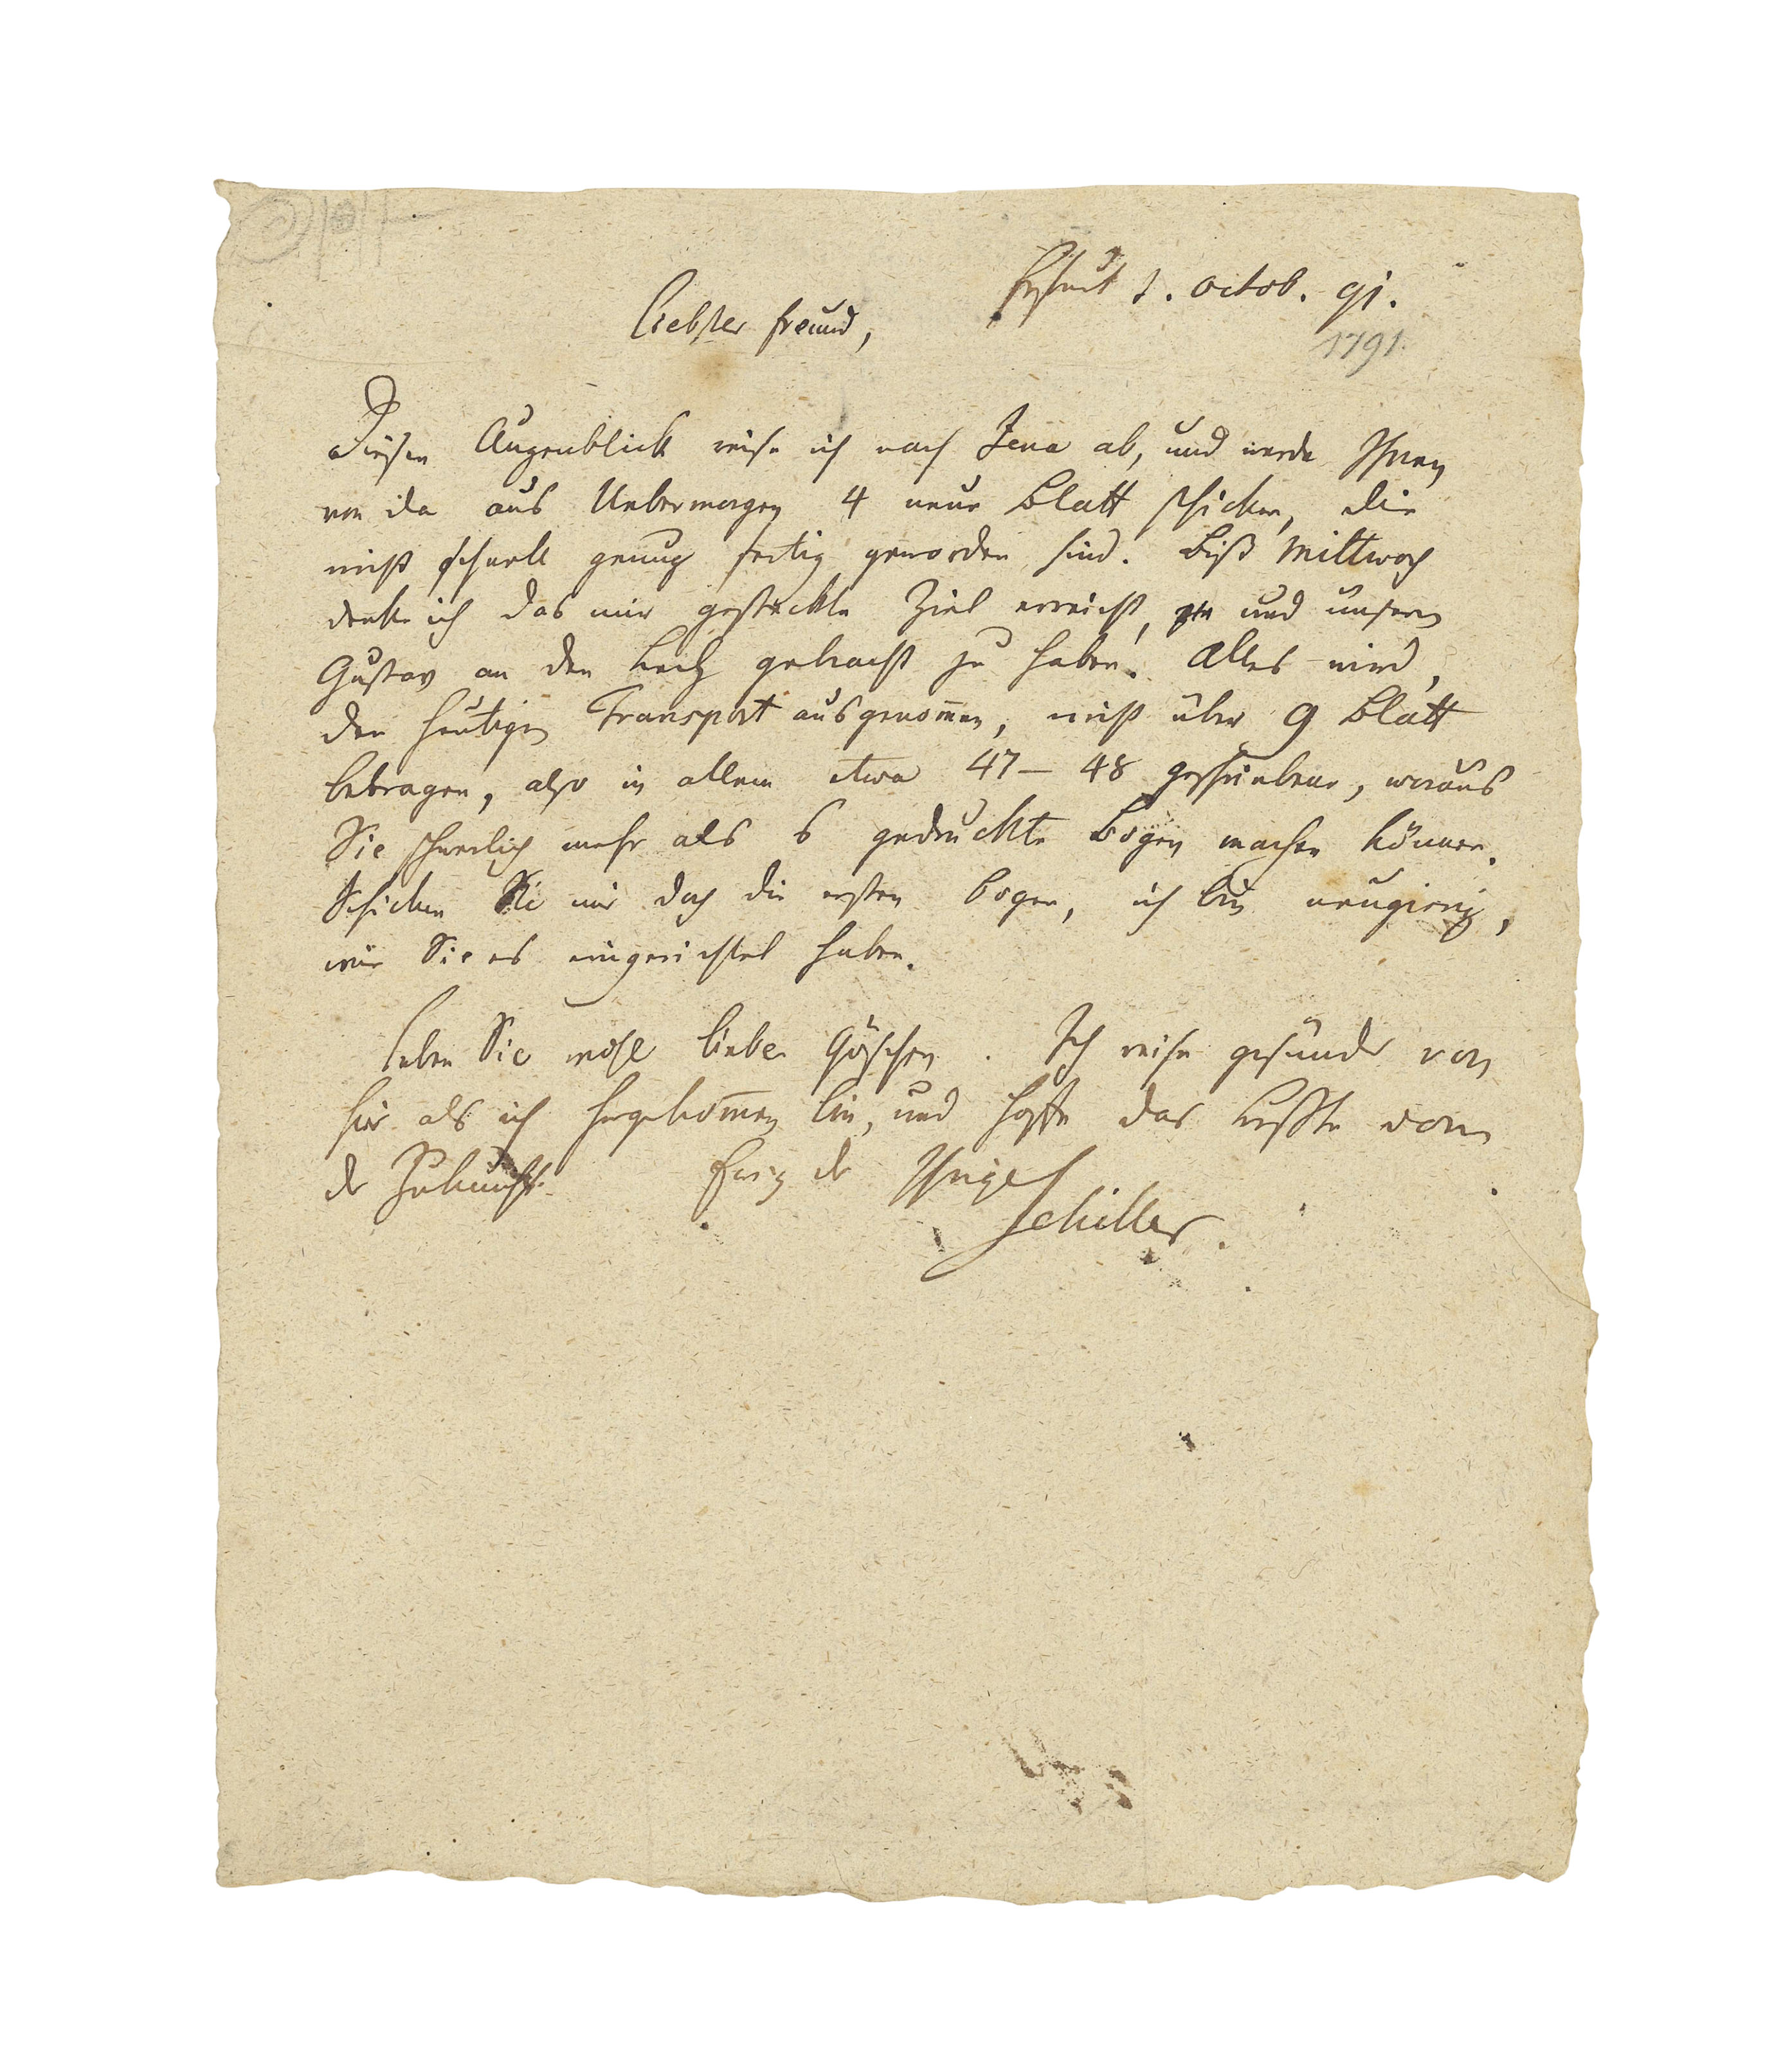 SCHILLER, Friedrich (1759-1805). Autograph letter signed ('Schiller') to [the Leipzig publisher Georg Göschen], Erfurt, 1 October 1791, one page, 4to (252 x 202mm), docket (pencil annotations), with a transcription, tipped onto an album leaf. Provenance: from the autograph collection of Sir Francis Clare Ford (1828-1899).